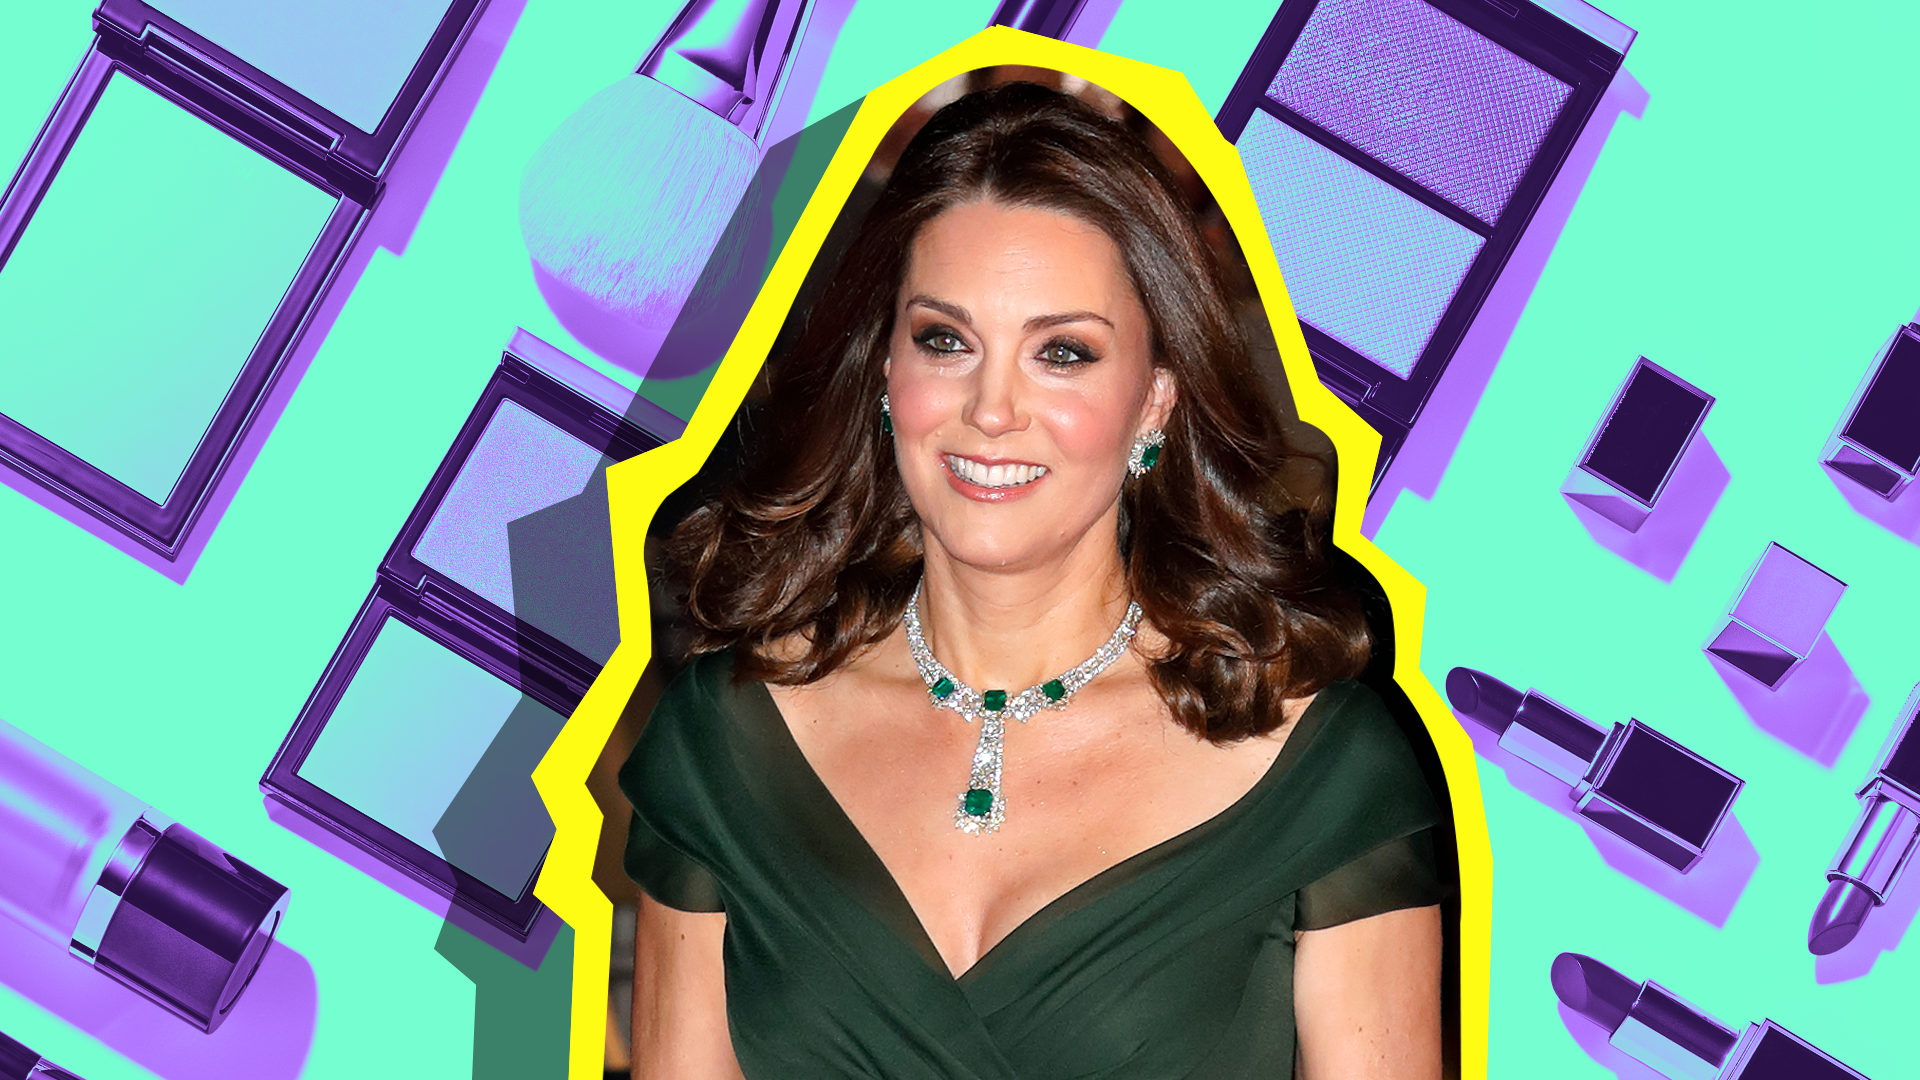 10 Affordable Drugstore Beauty Products Kate Middleton Swears By